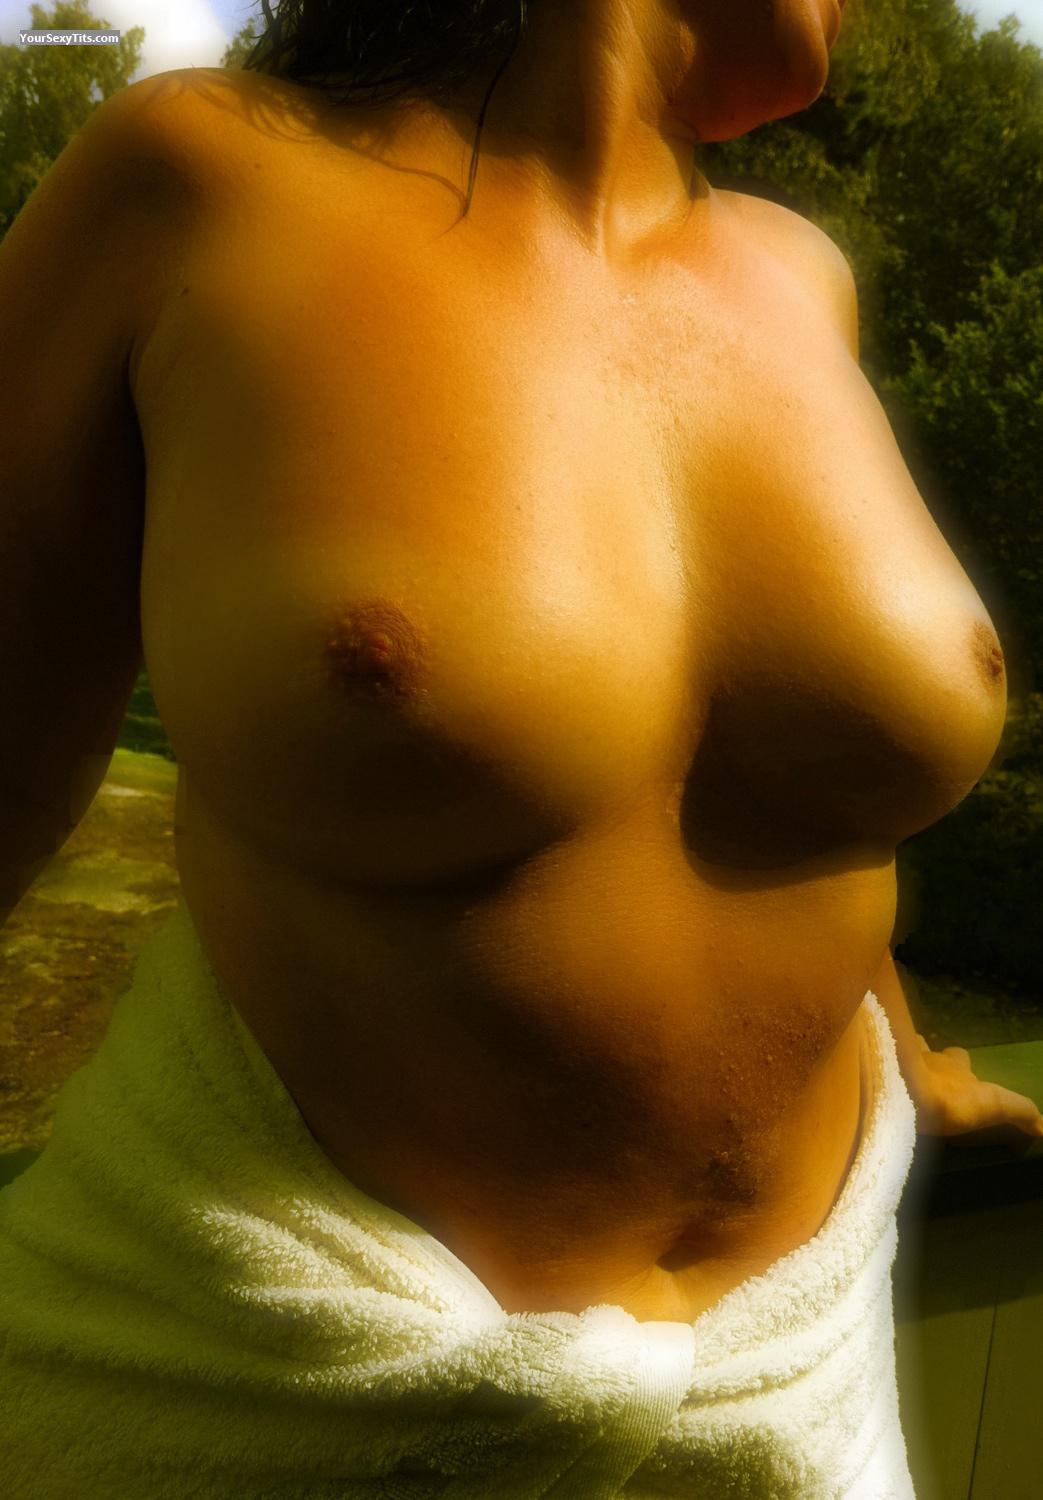 Tit Flash: Medium Tits By IPhone - Lola from Sweden